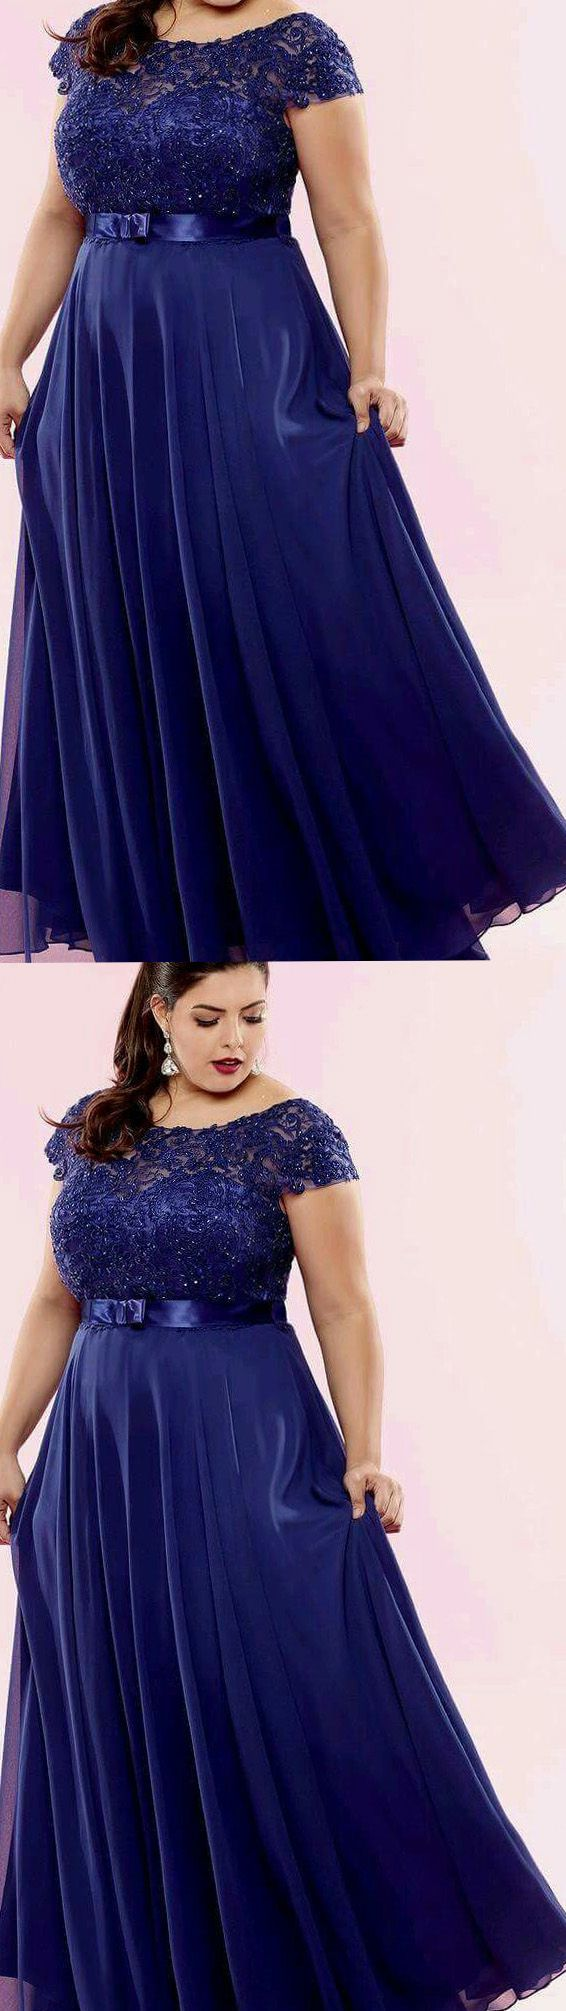 Royal blue prom dresses long prom dresses short sleeve prom